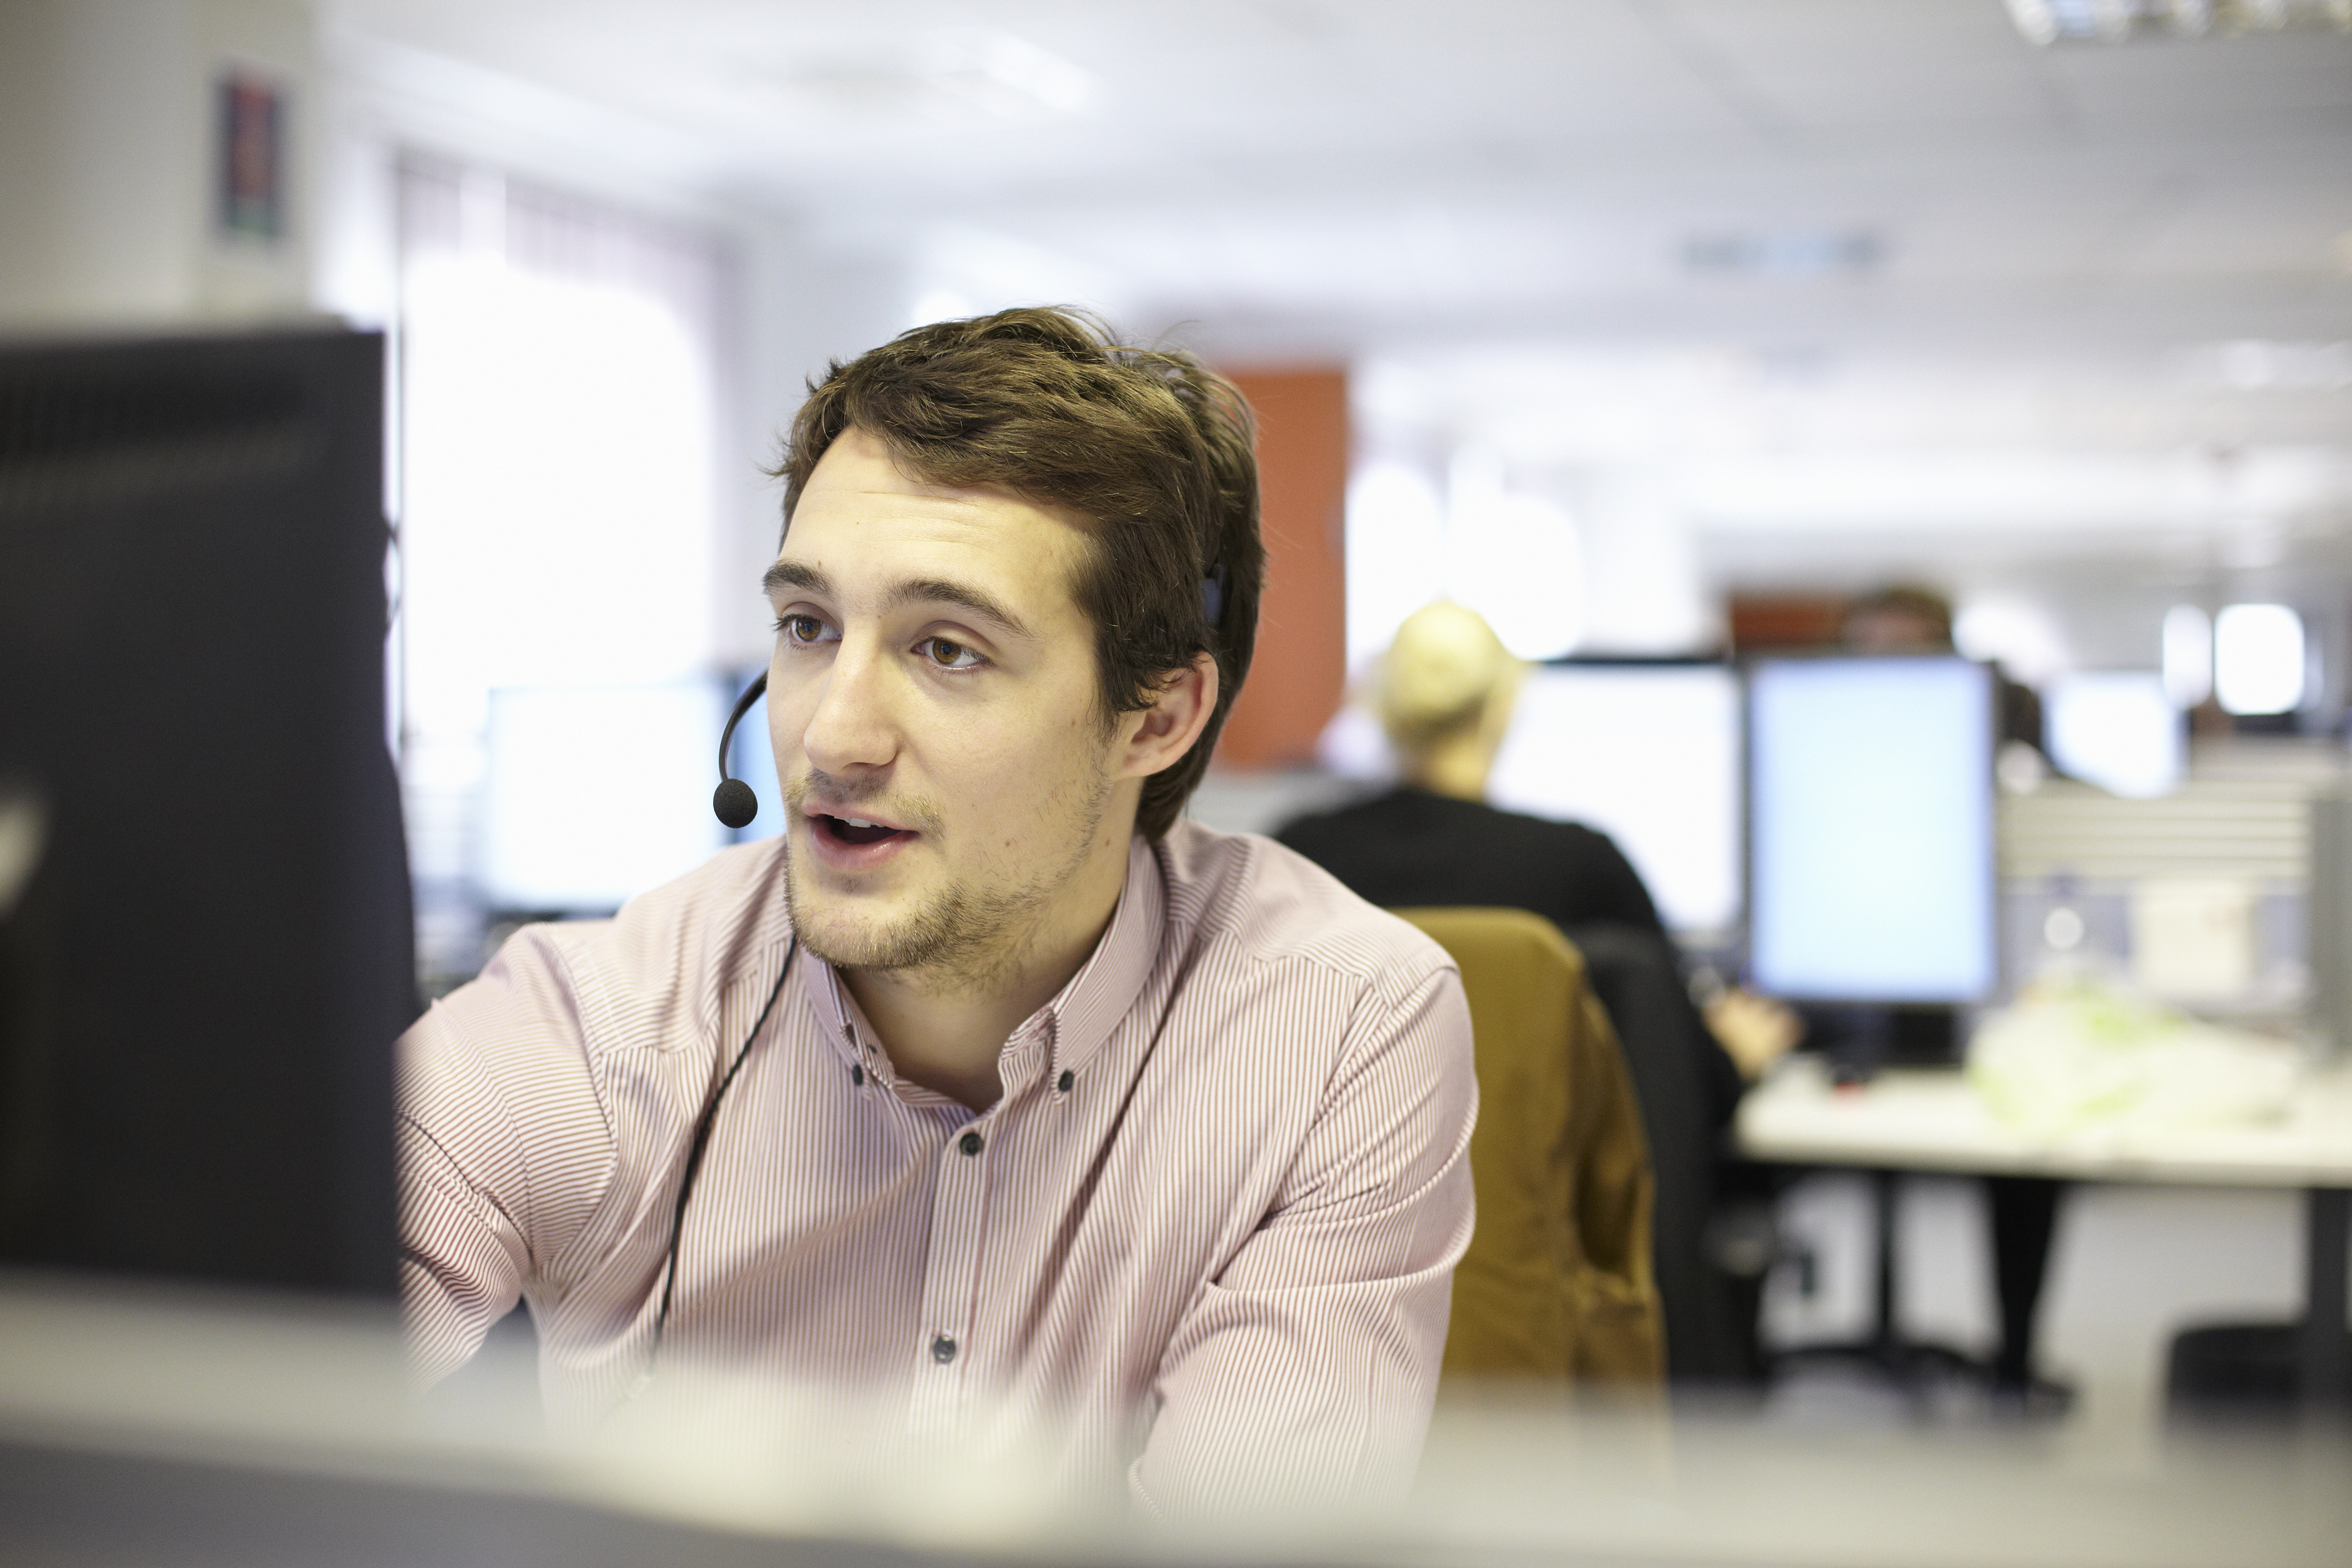 Young man in call center